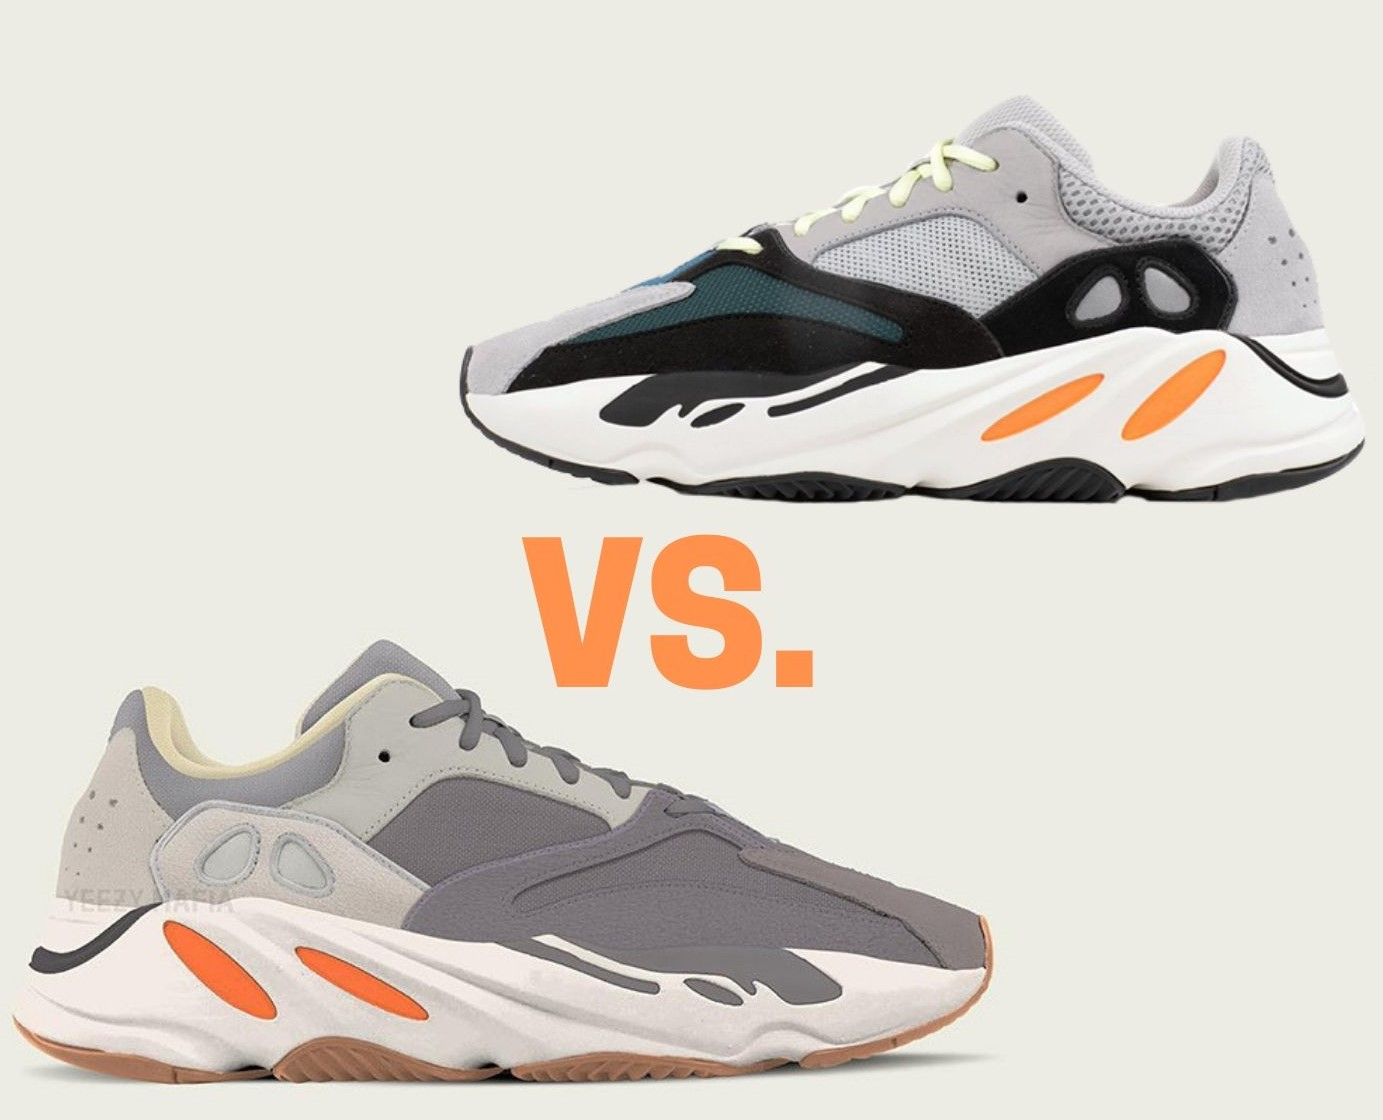 reputable site 34328 aefb9 Yeezy 700 Waverunner Vs. Magnet: Which One Do You Prefer?